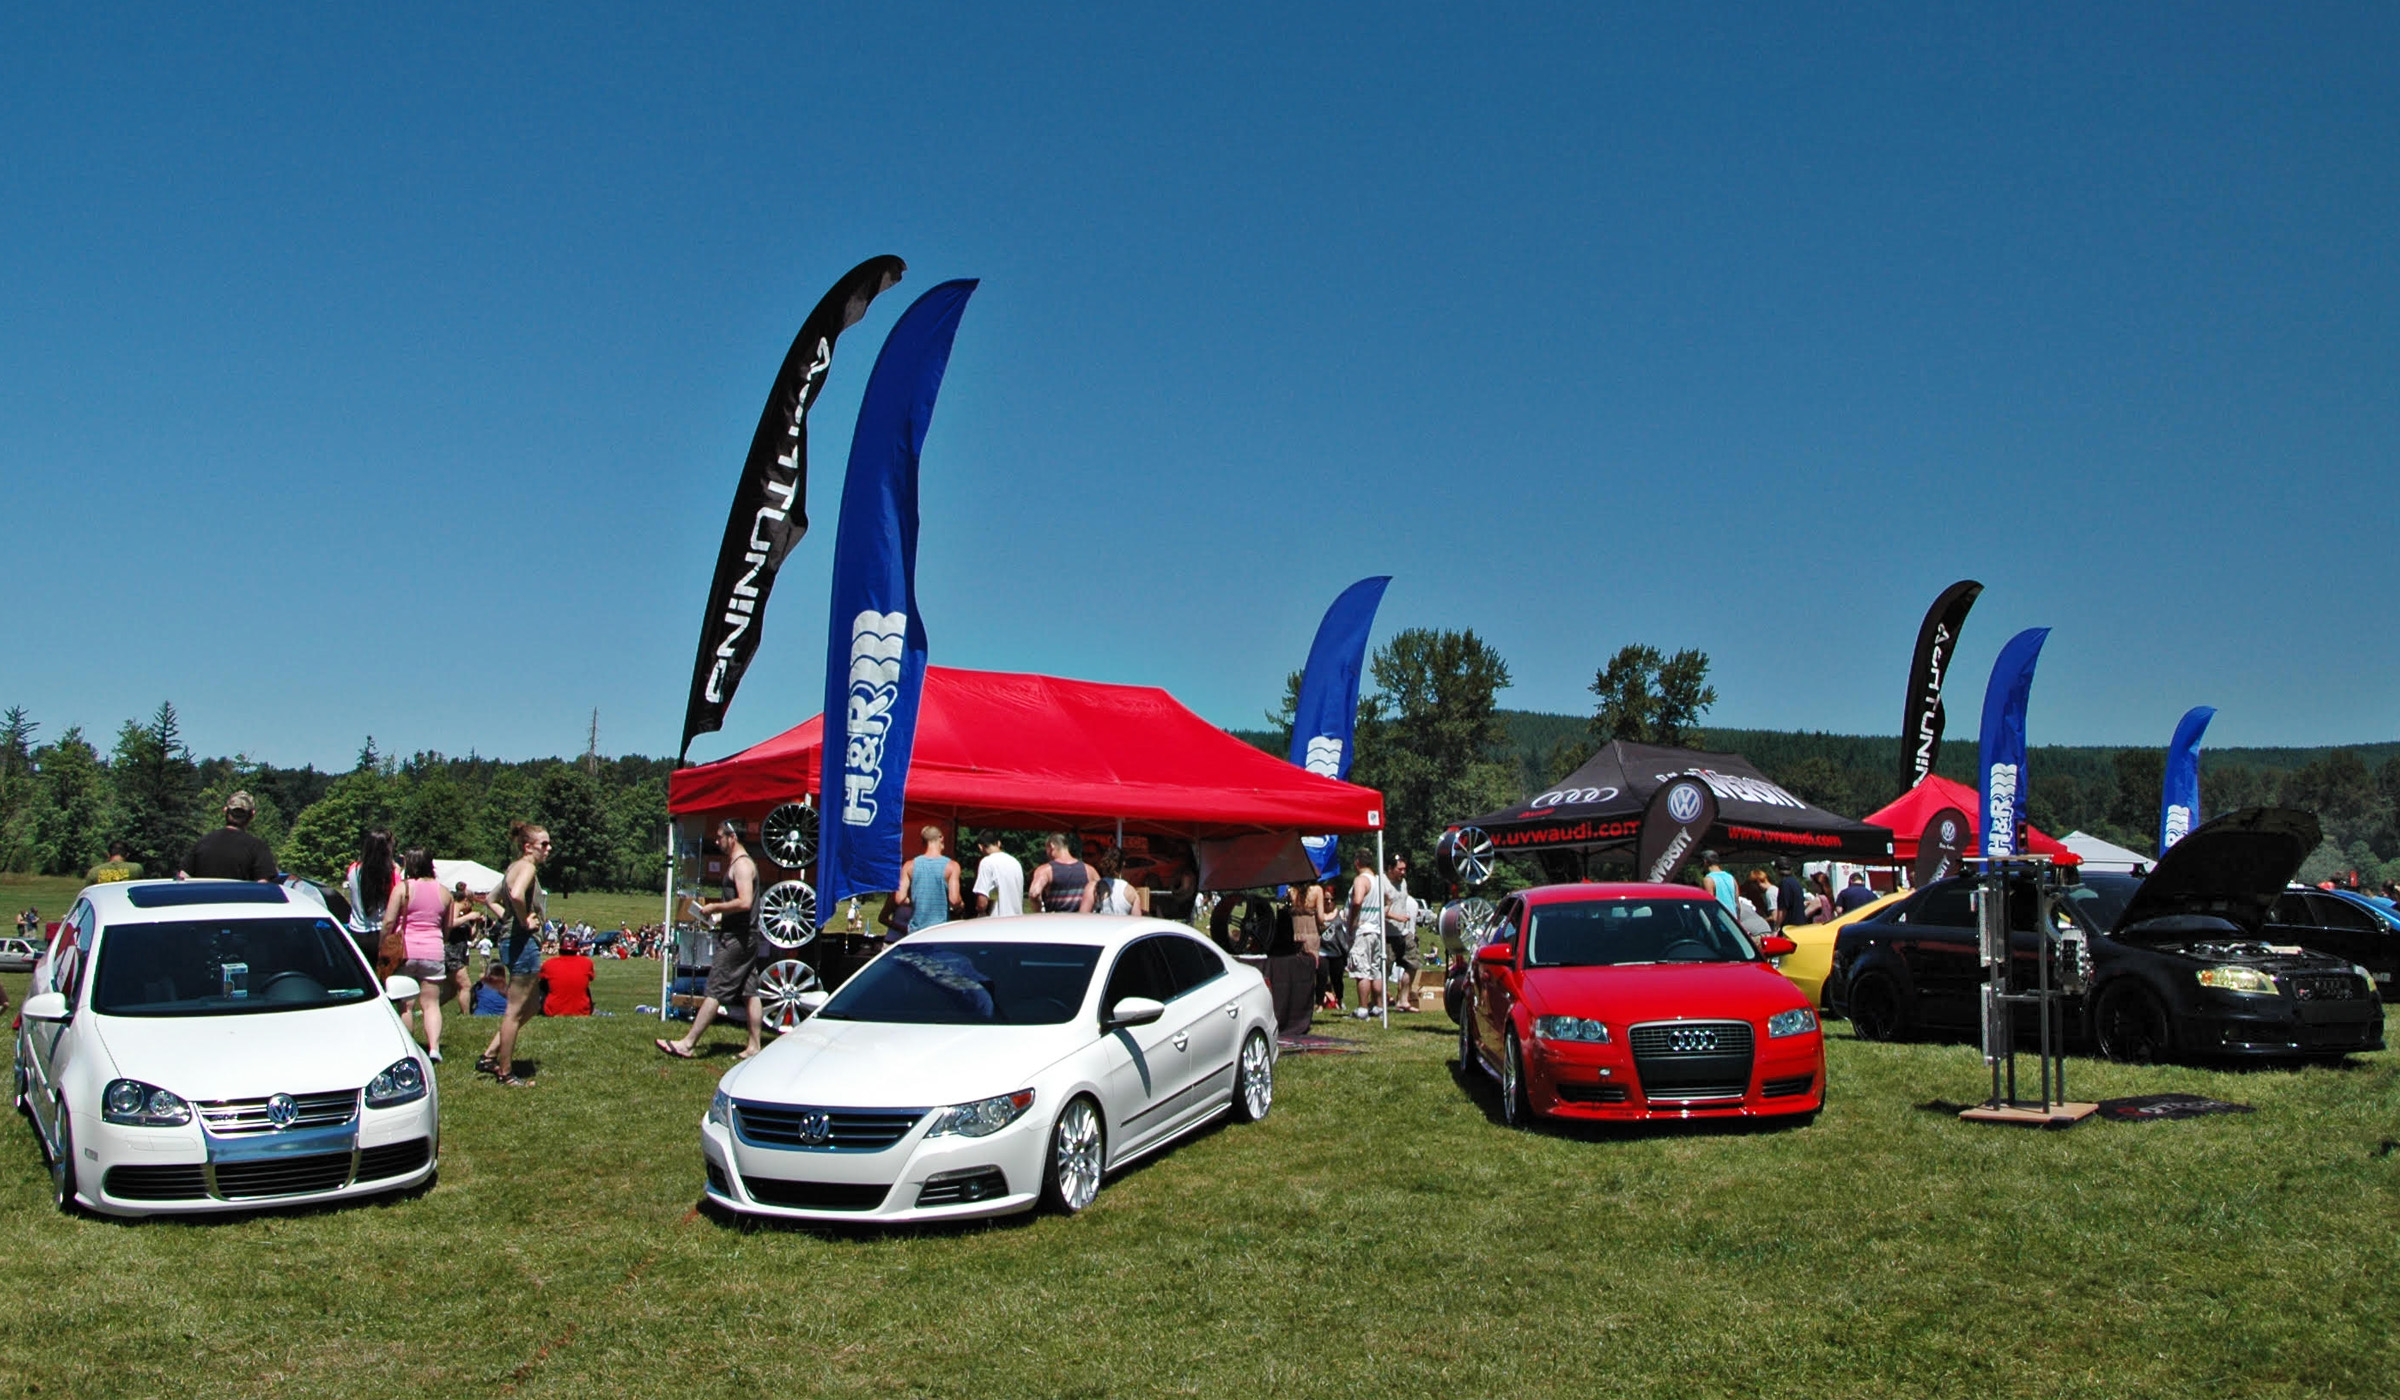 WaterWerks On The Green With Achtuning